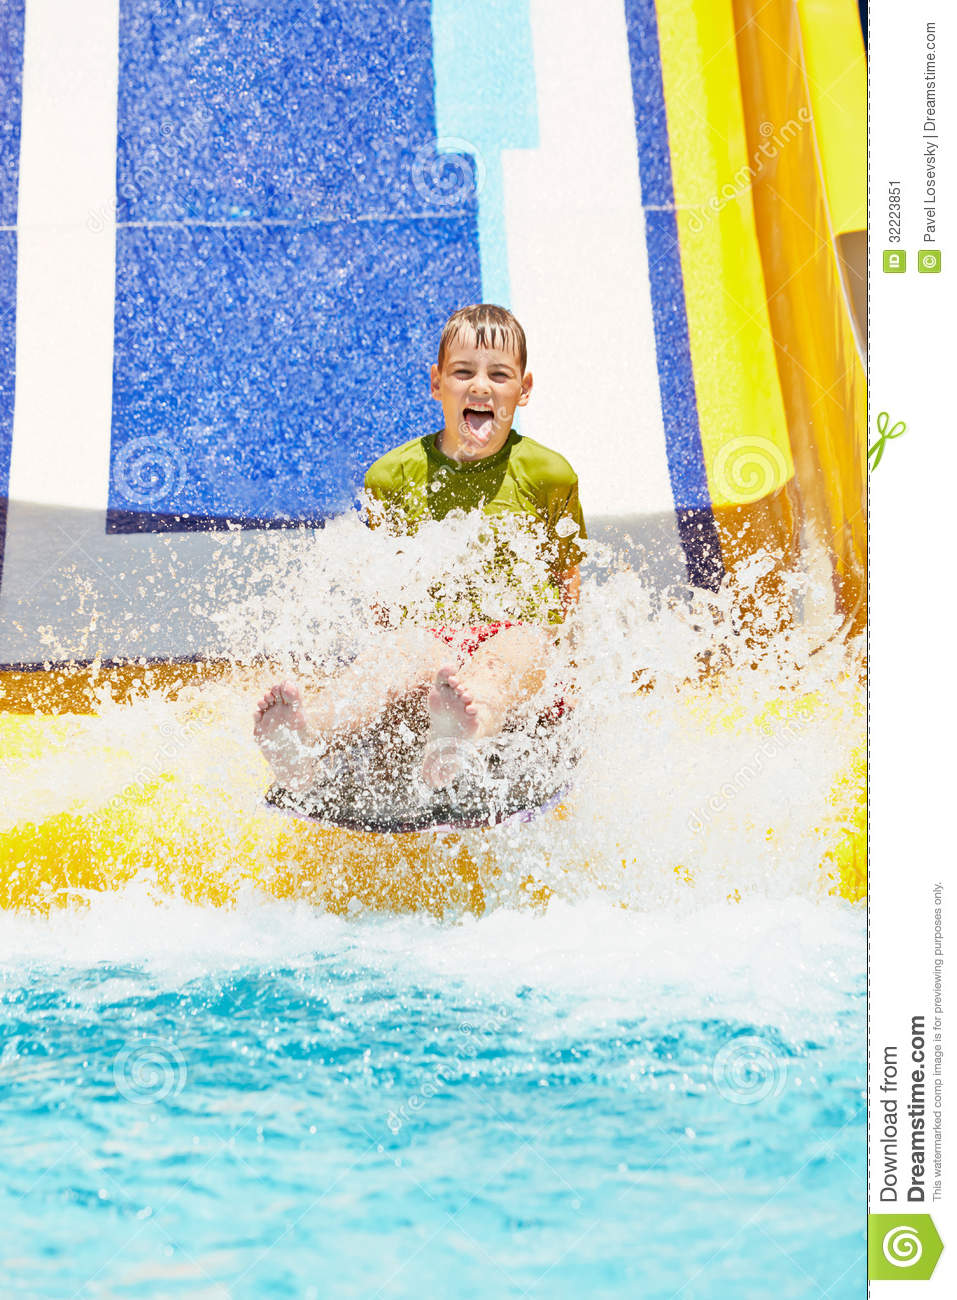 Boy Shouts While Slides Down Water Slide At Summer